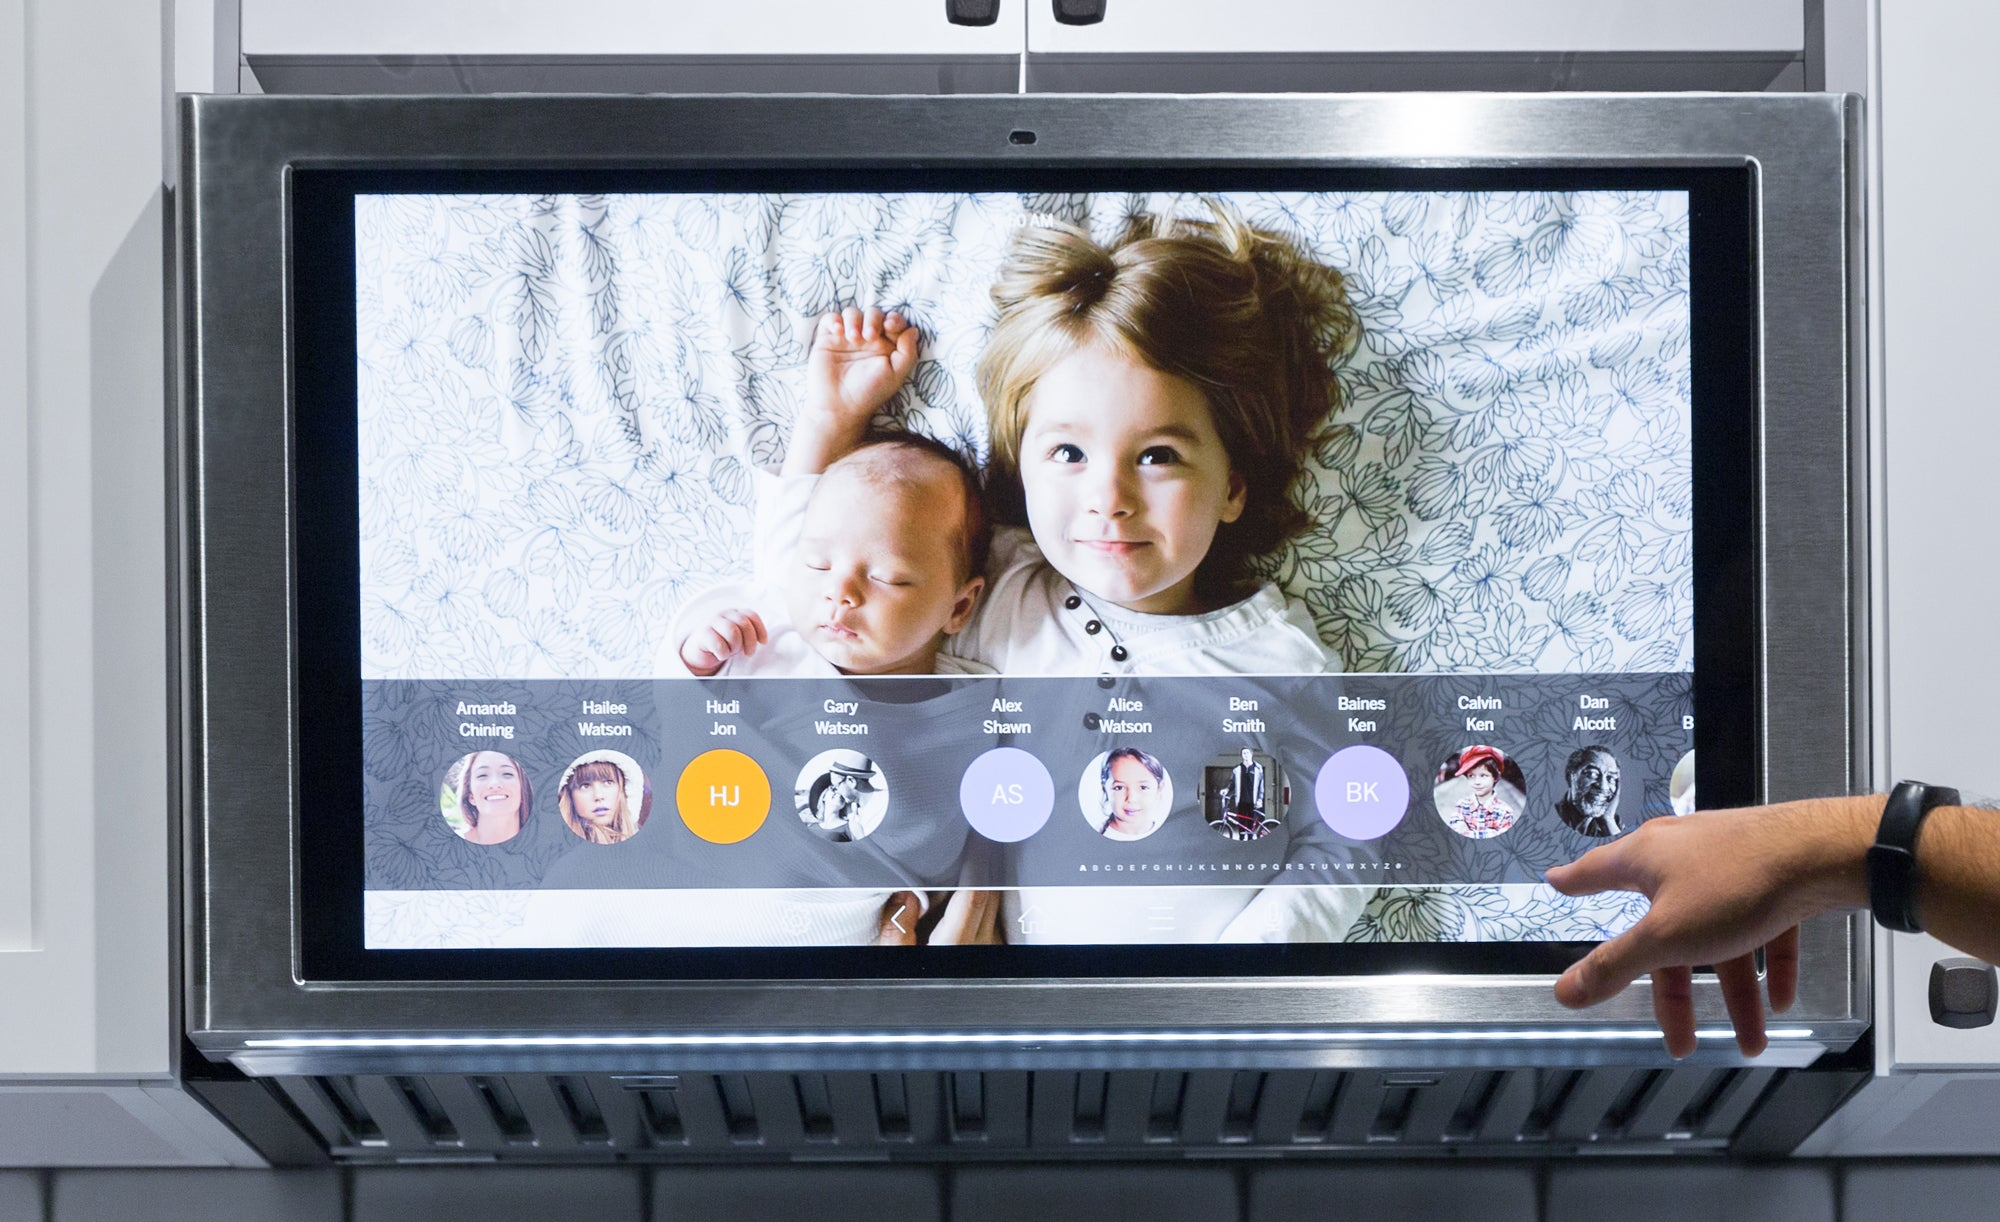 GE Wants To Hang A 27-inch Screen And A Camera Over Your Stove